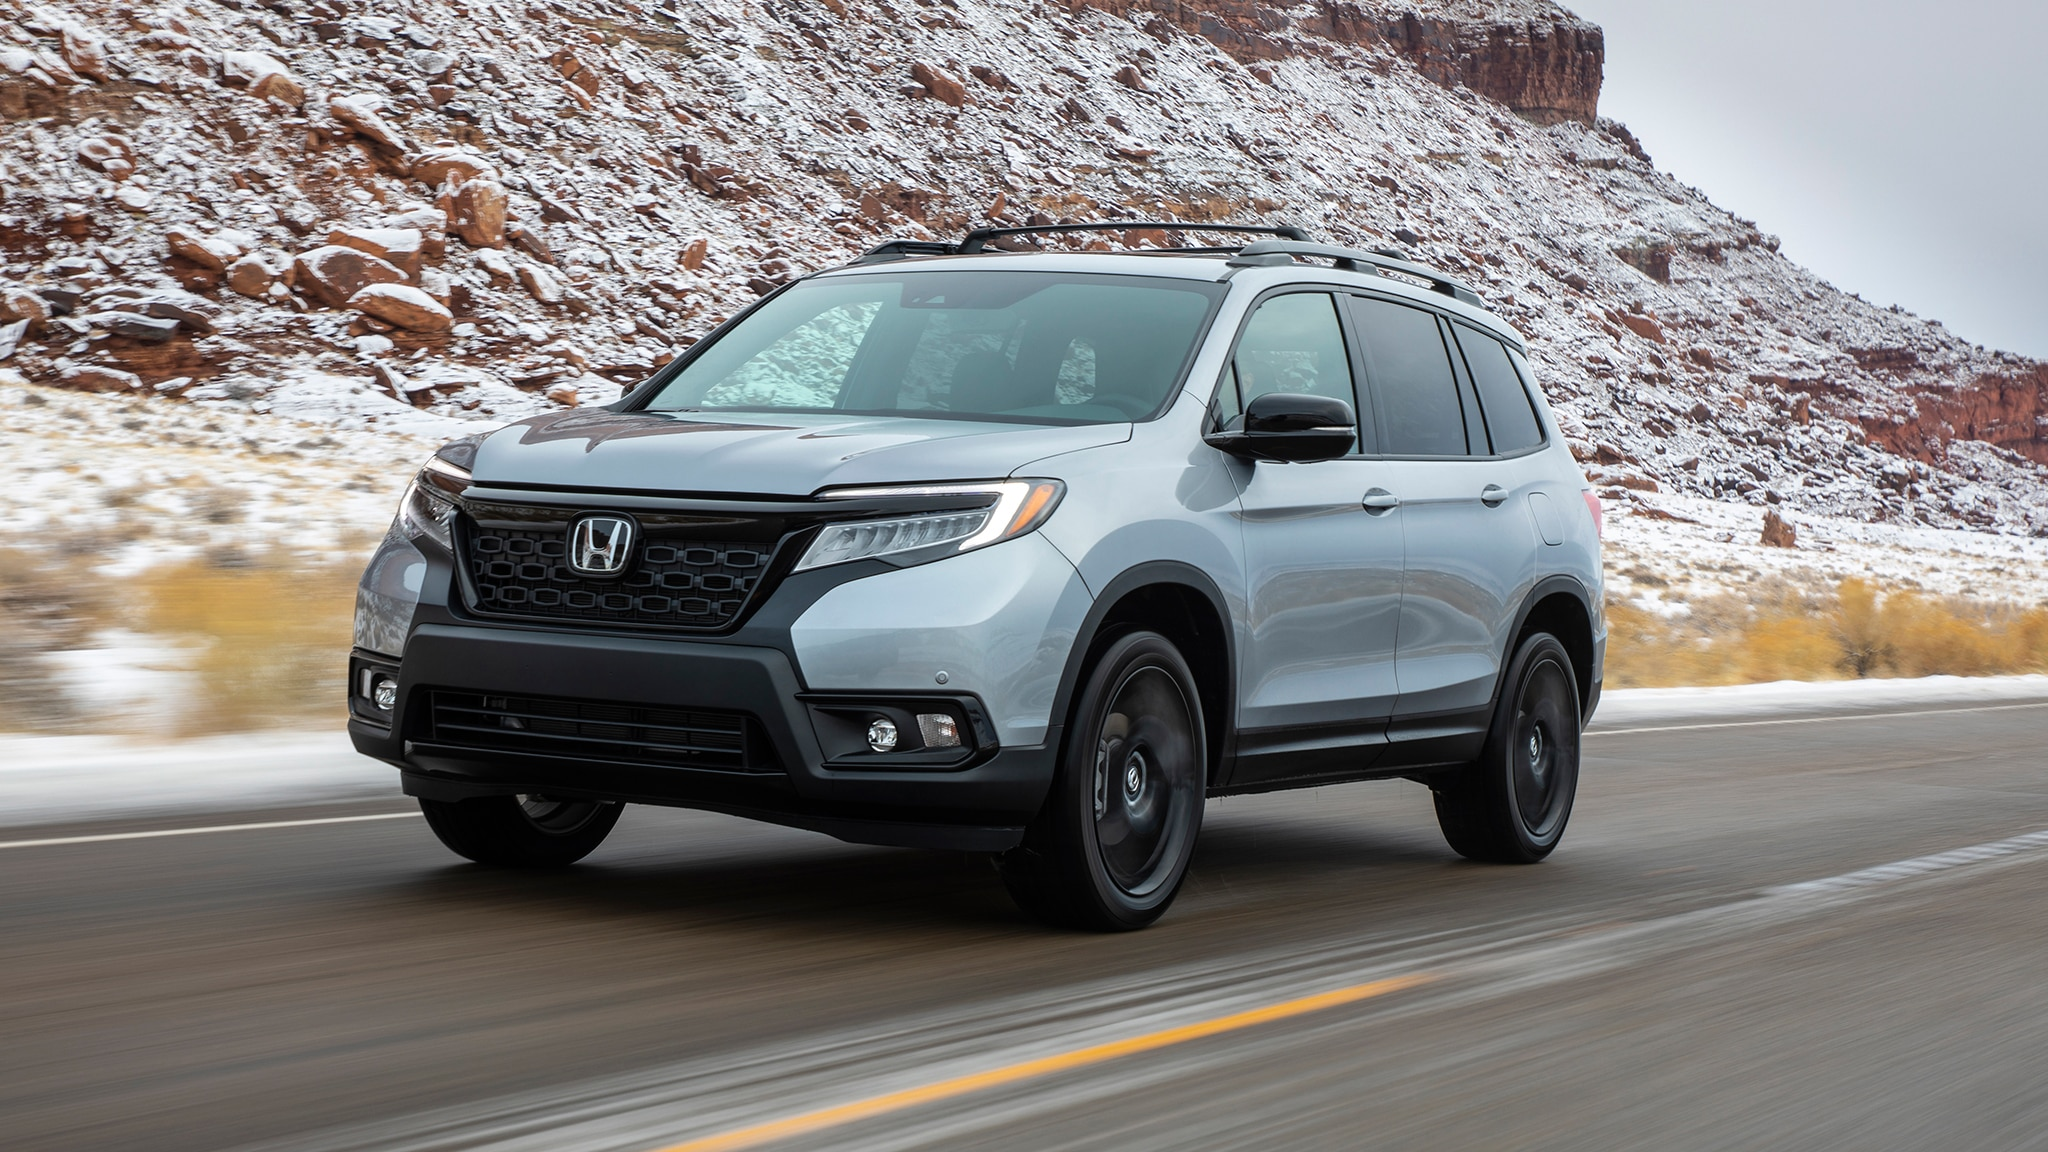 2020 Honda Passport: Design, Specs, Equipment, Price >> 2020 Honda Passport Design Specs Equipment Price Upcoming New